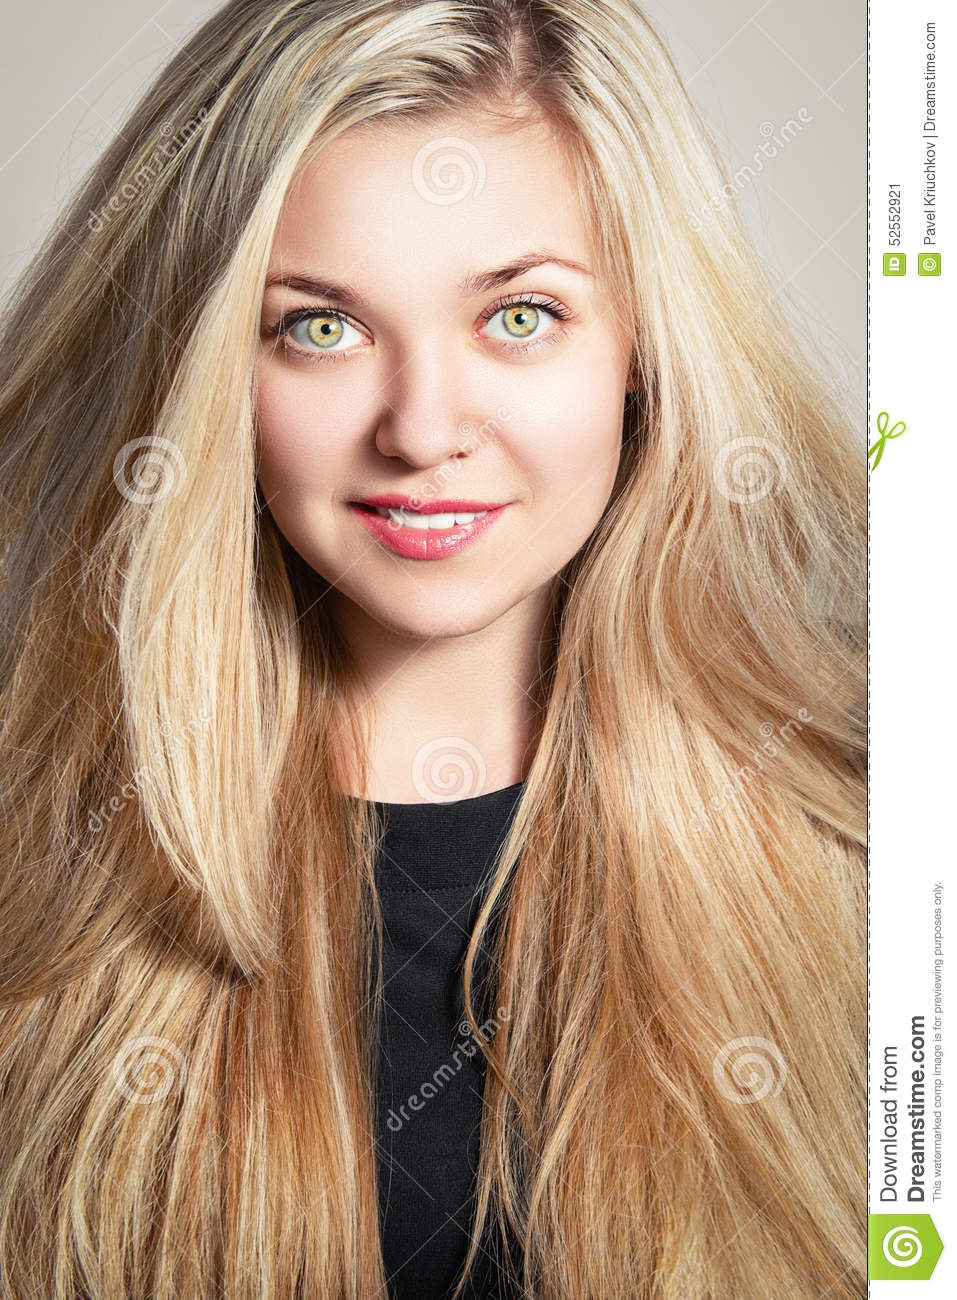 Une Fille French Teenage Fashion For Spring 2016: Verticale De Mode D'une Belle Fille Blonde Image Stock